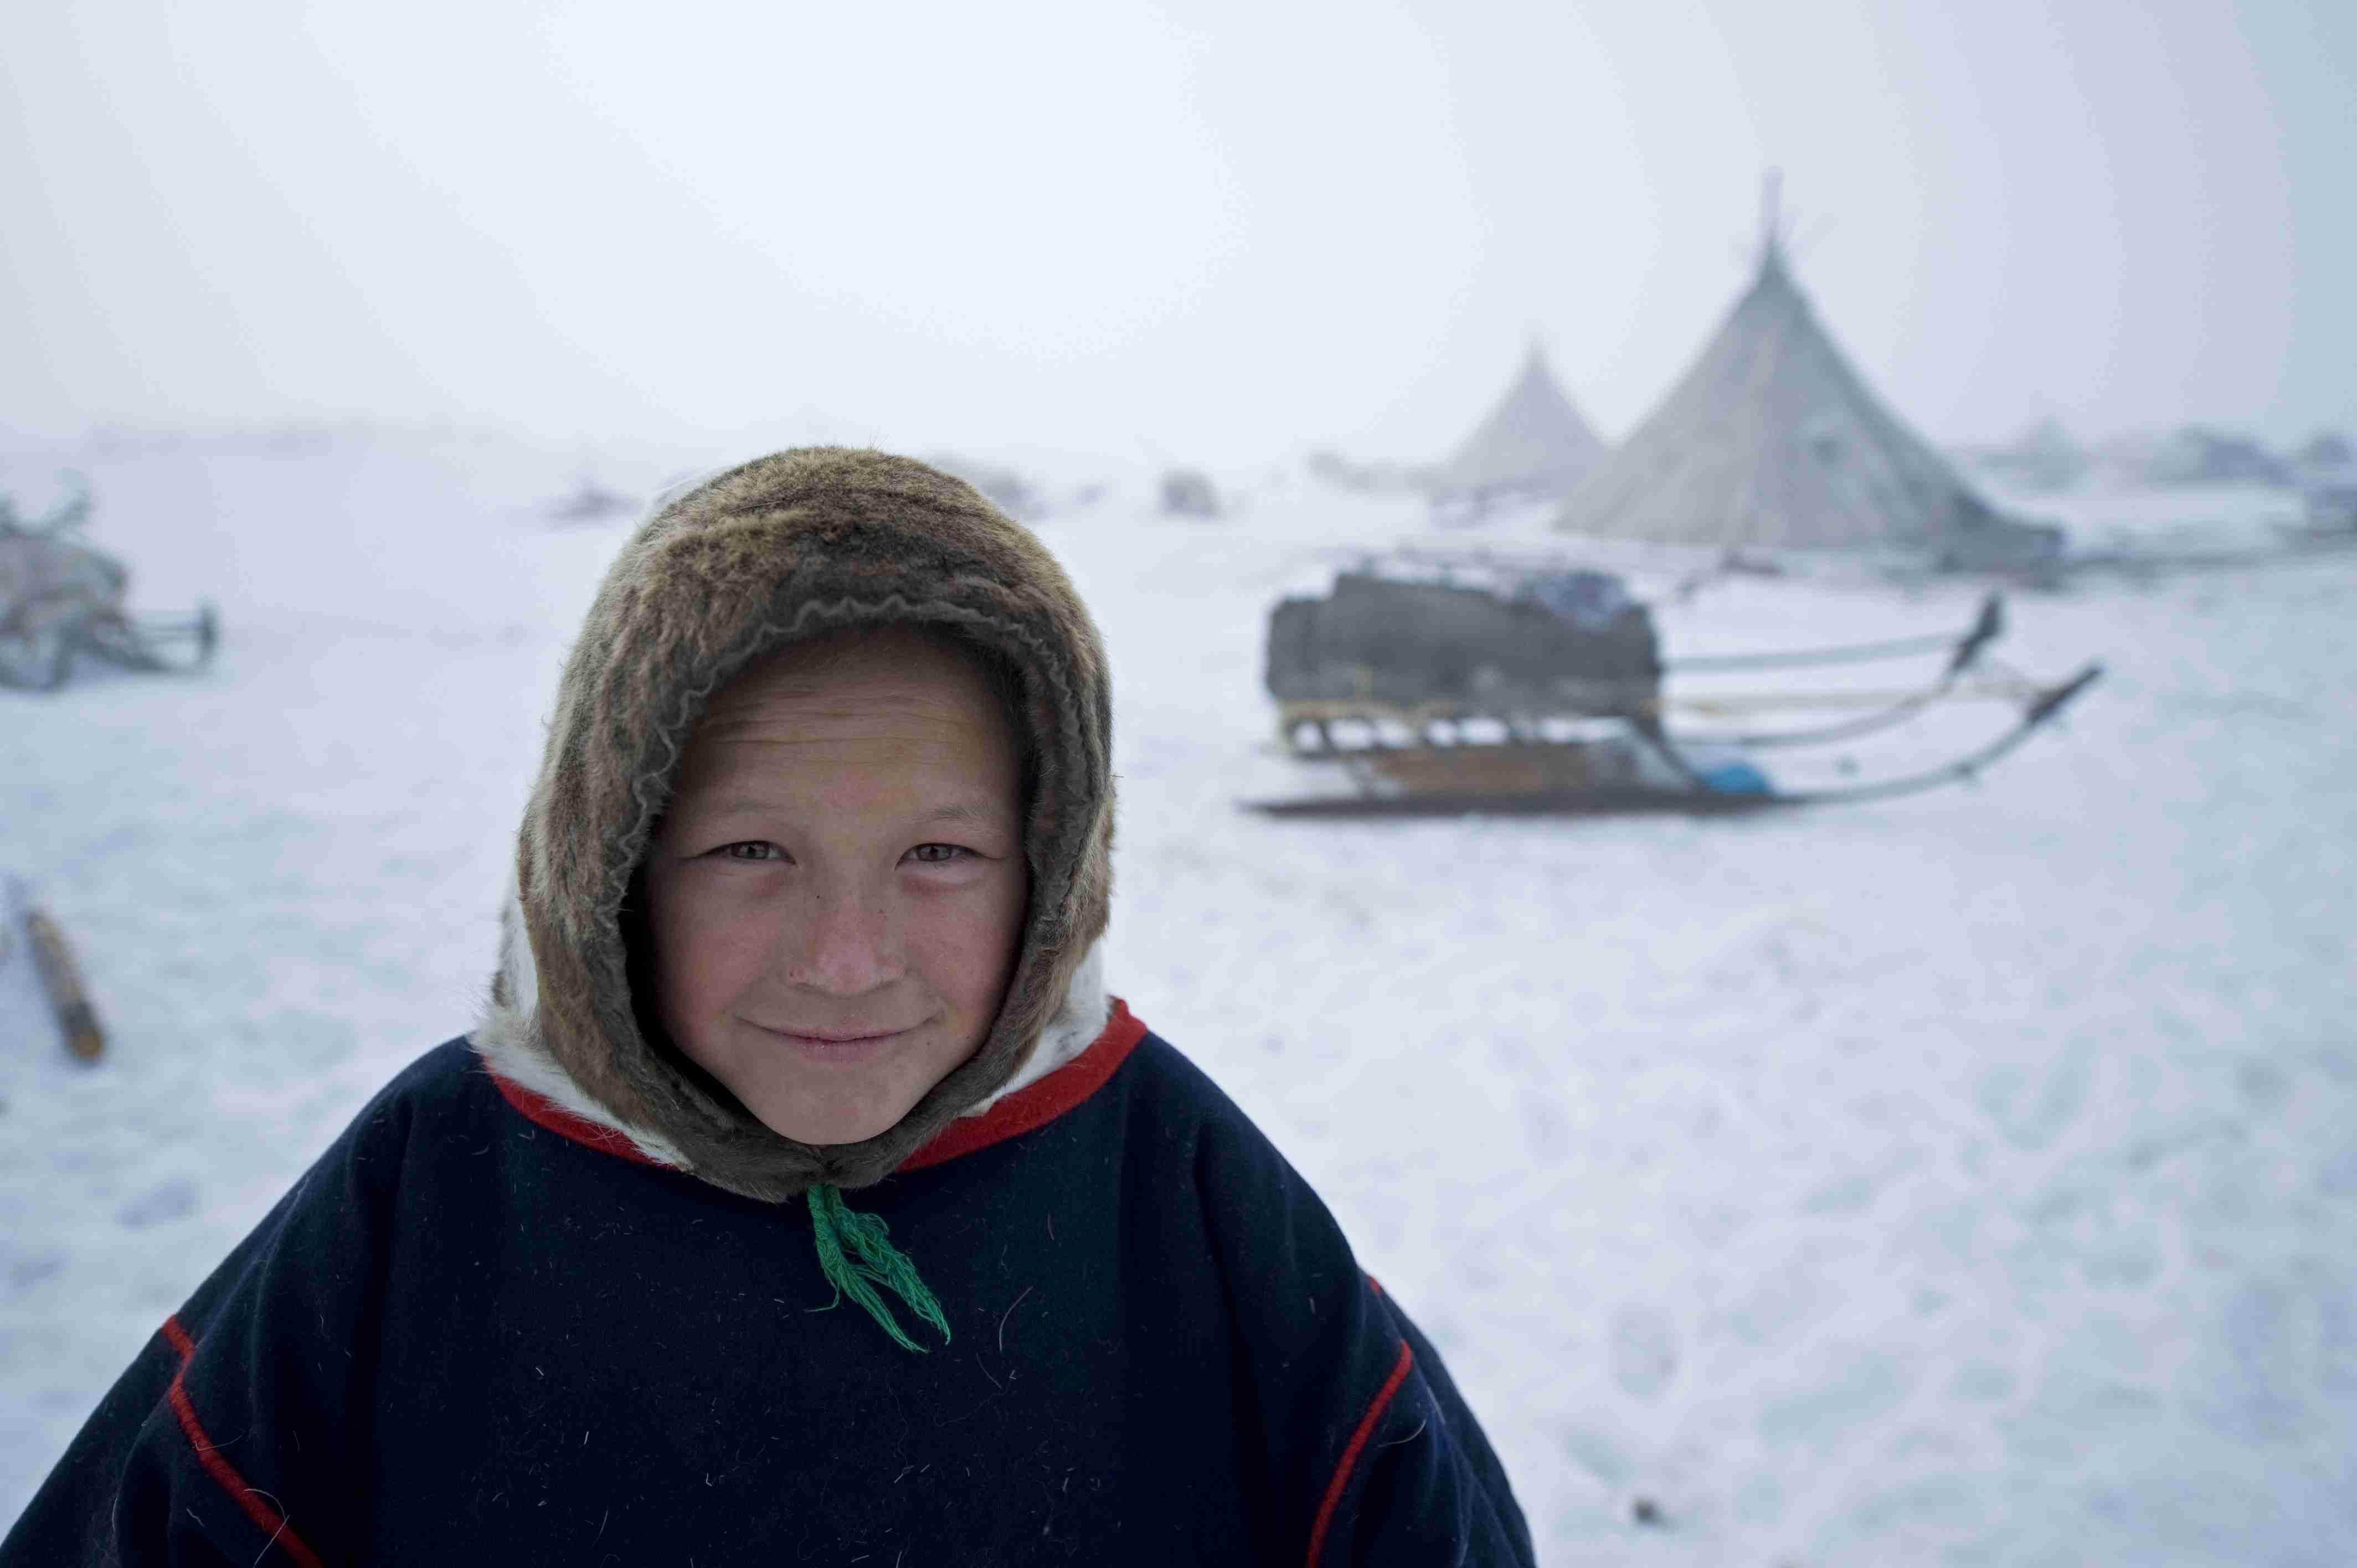 A Nenets boy. The Nenets are an indigenous group native to Siberia.